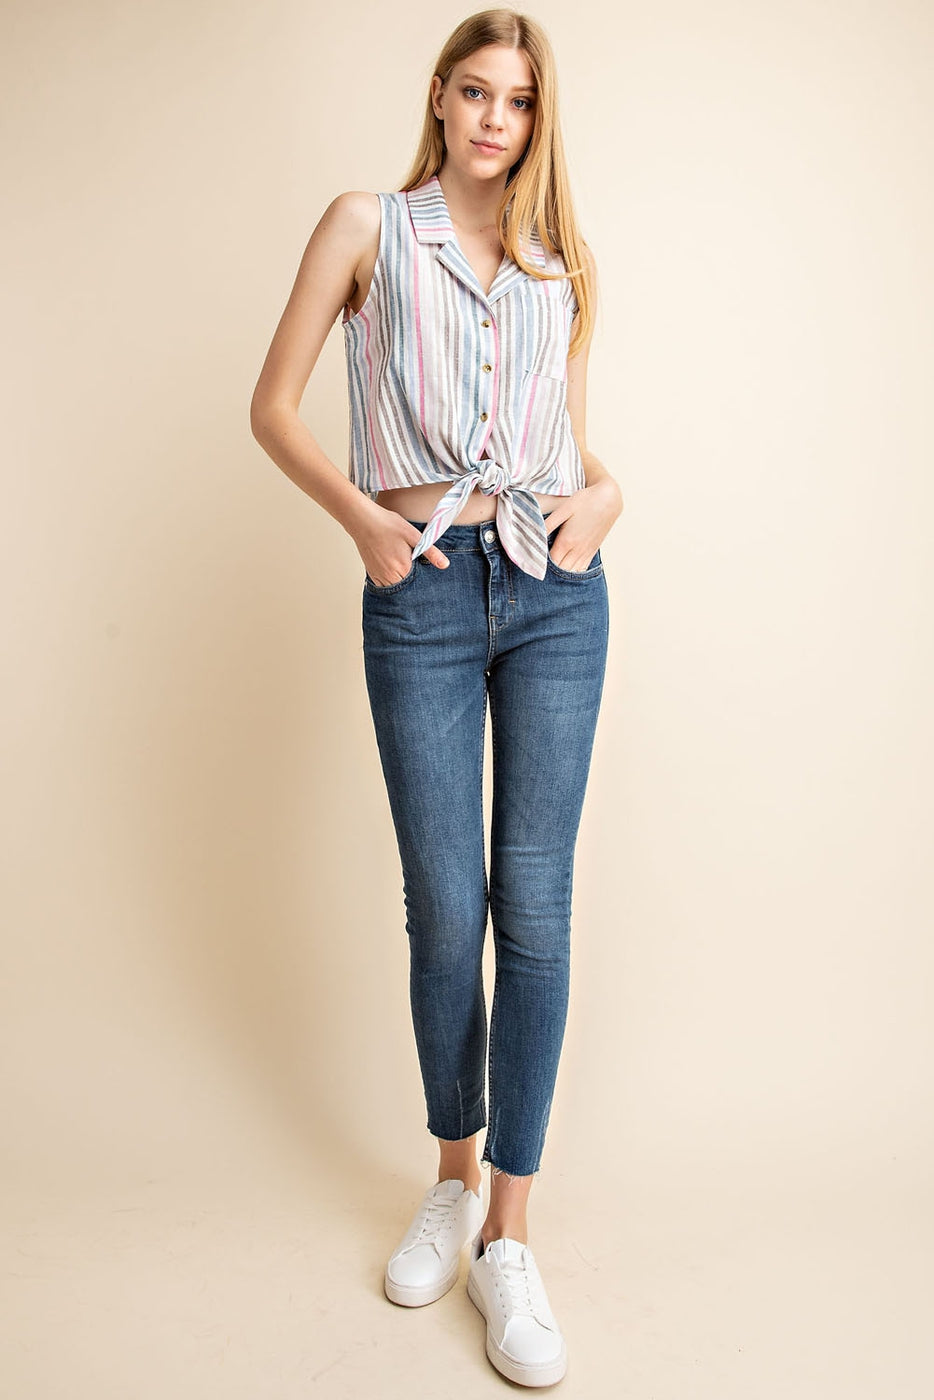 Sleeveless Top With Tie-Front Button Down Pocket Detail Siin Bees